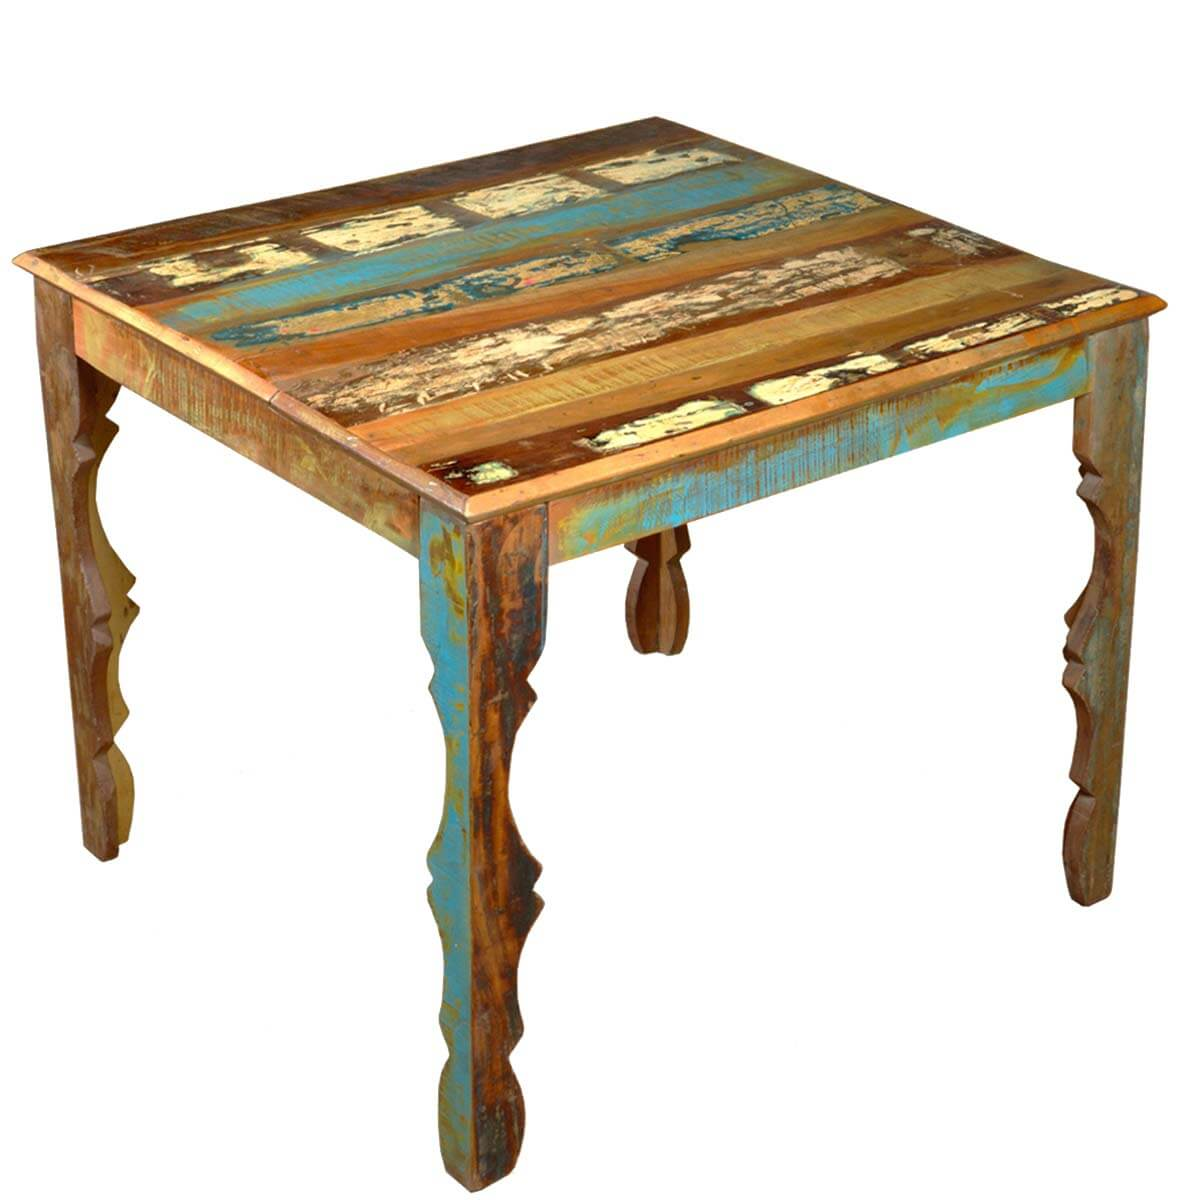 Rustic Reclaimed Wood 36quot Square Dining Table w Decorative  : 4352 from www.sierralivingconcepts.com size 1200 x 1200 jpeg 114kB